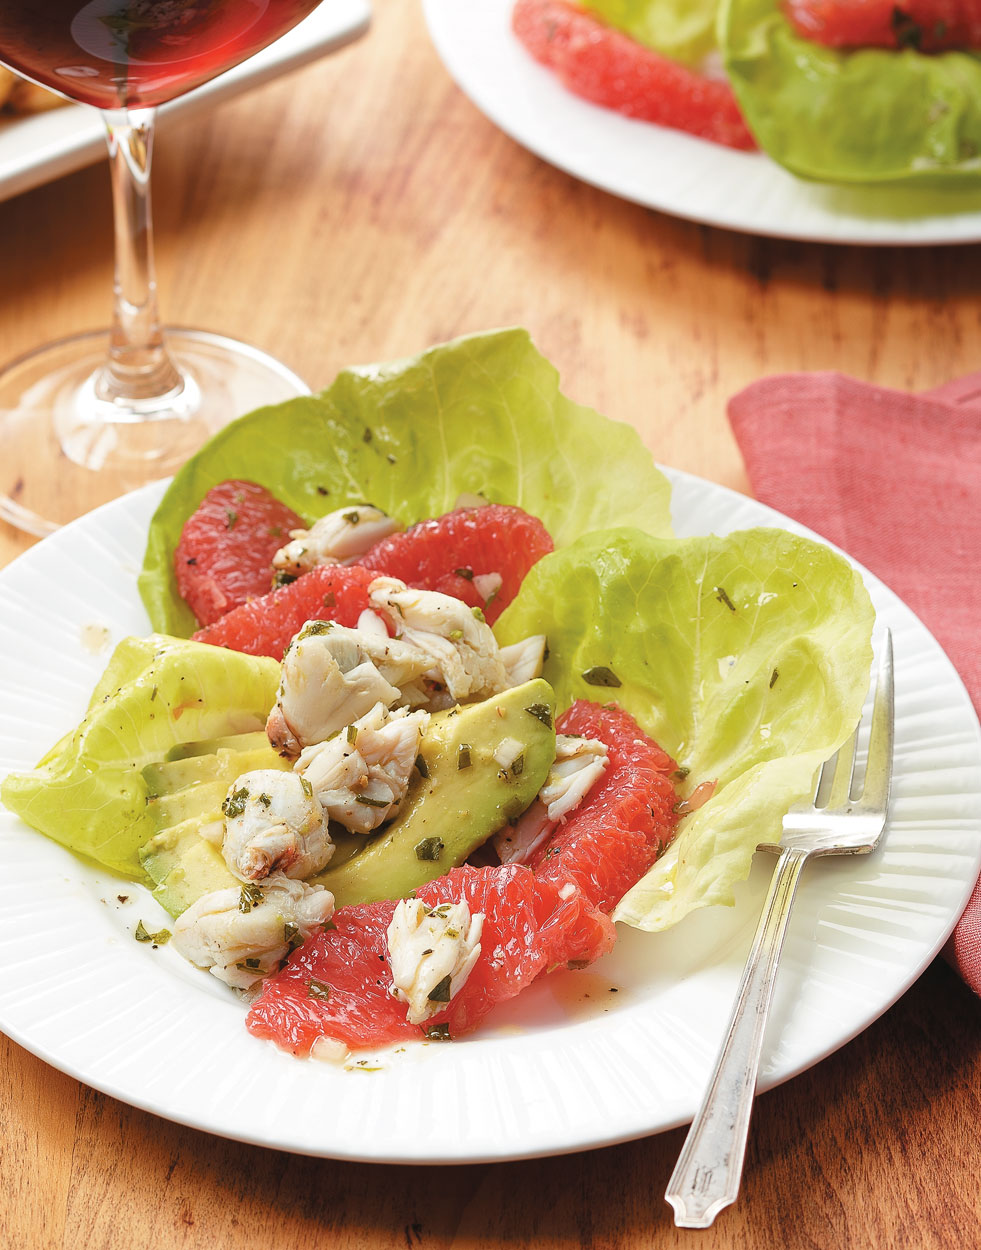 Crab, Avocado & Grapefruit Salad with Grapefruit-Tarragon Vinaigrette